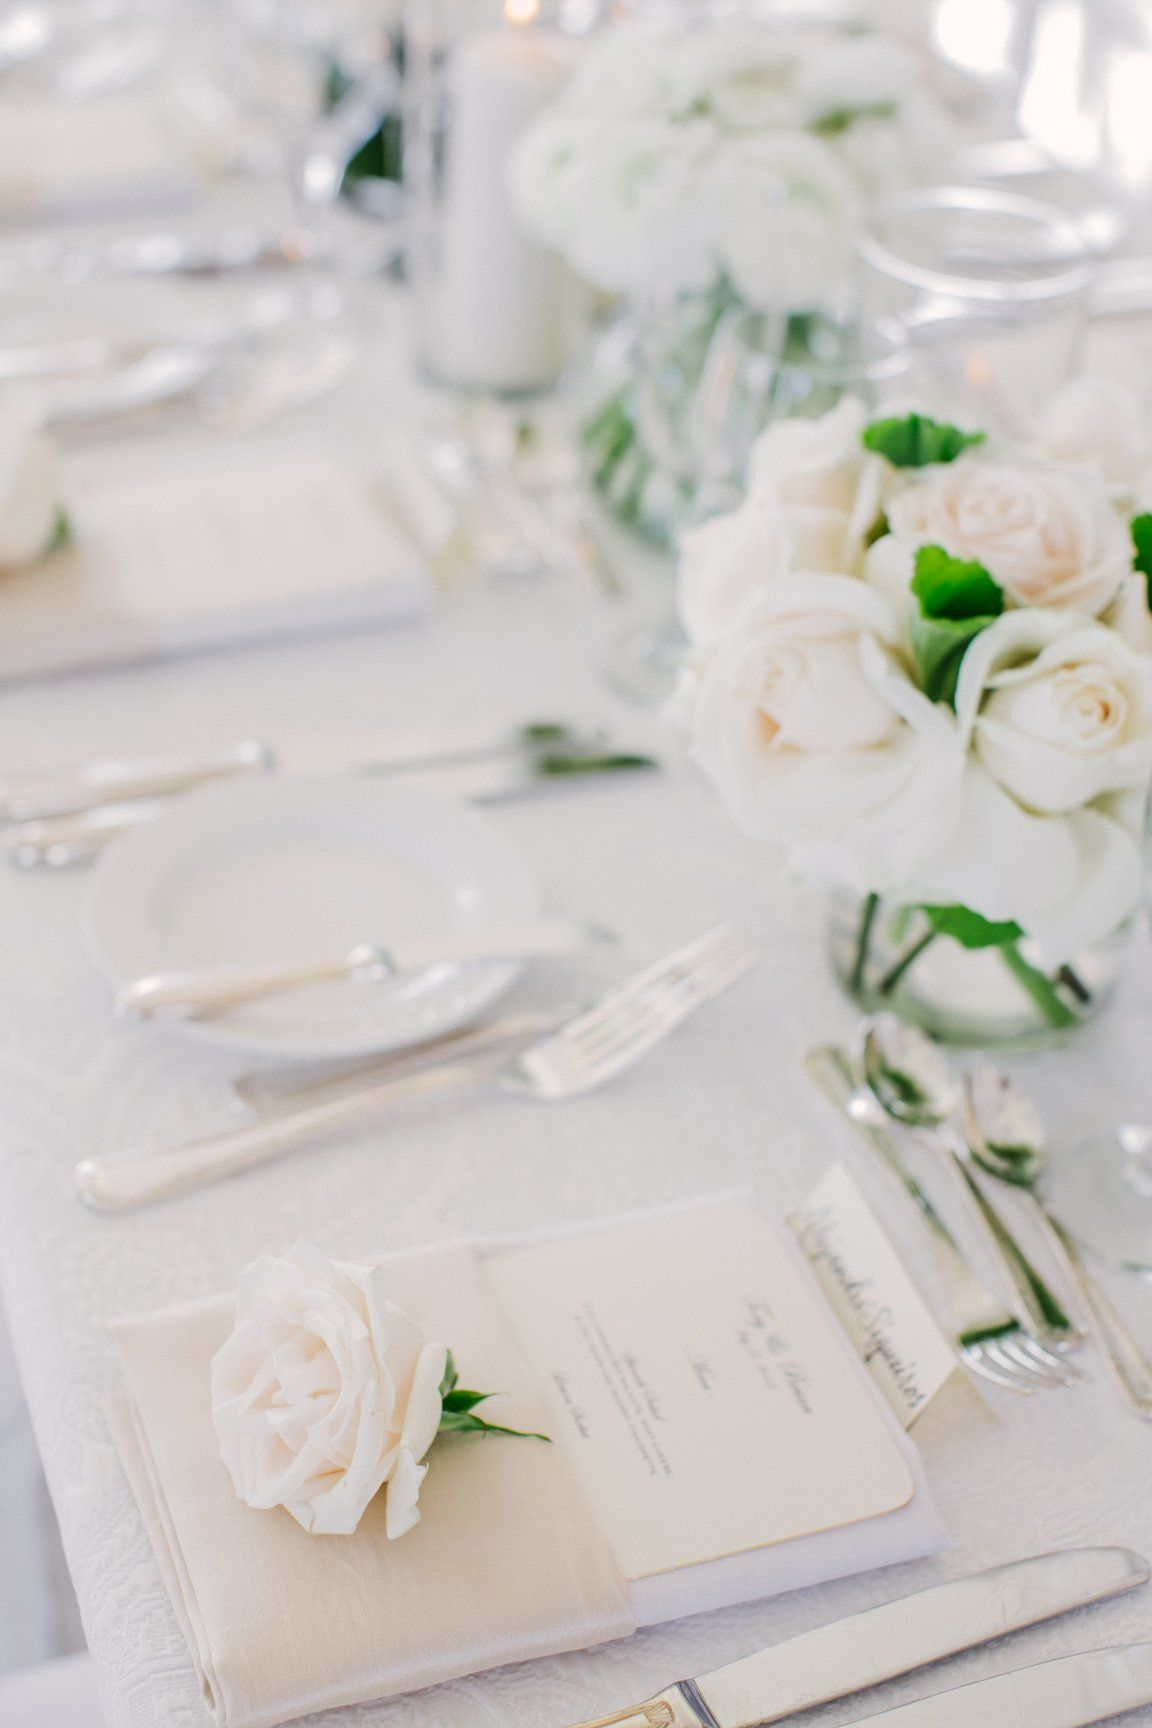 Wedding place setting wedding ideas pinterest for Wedding place settings ideas